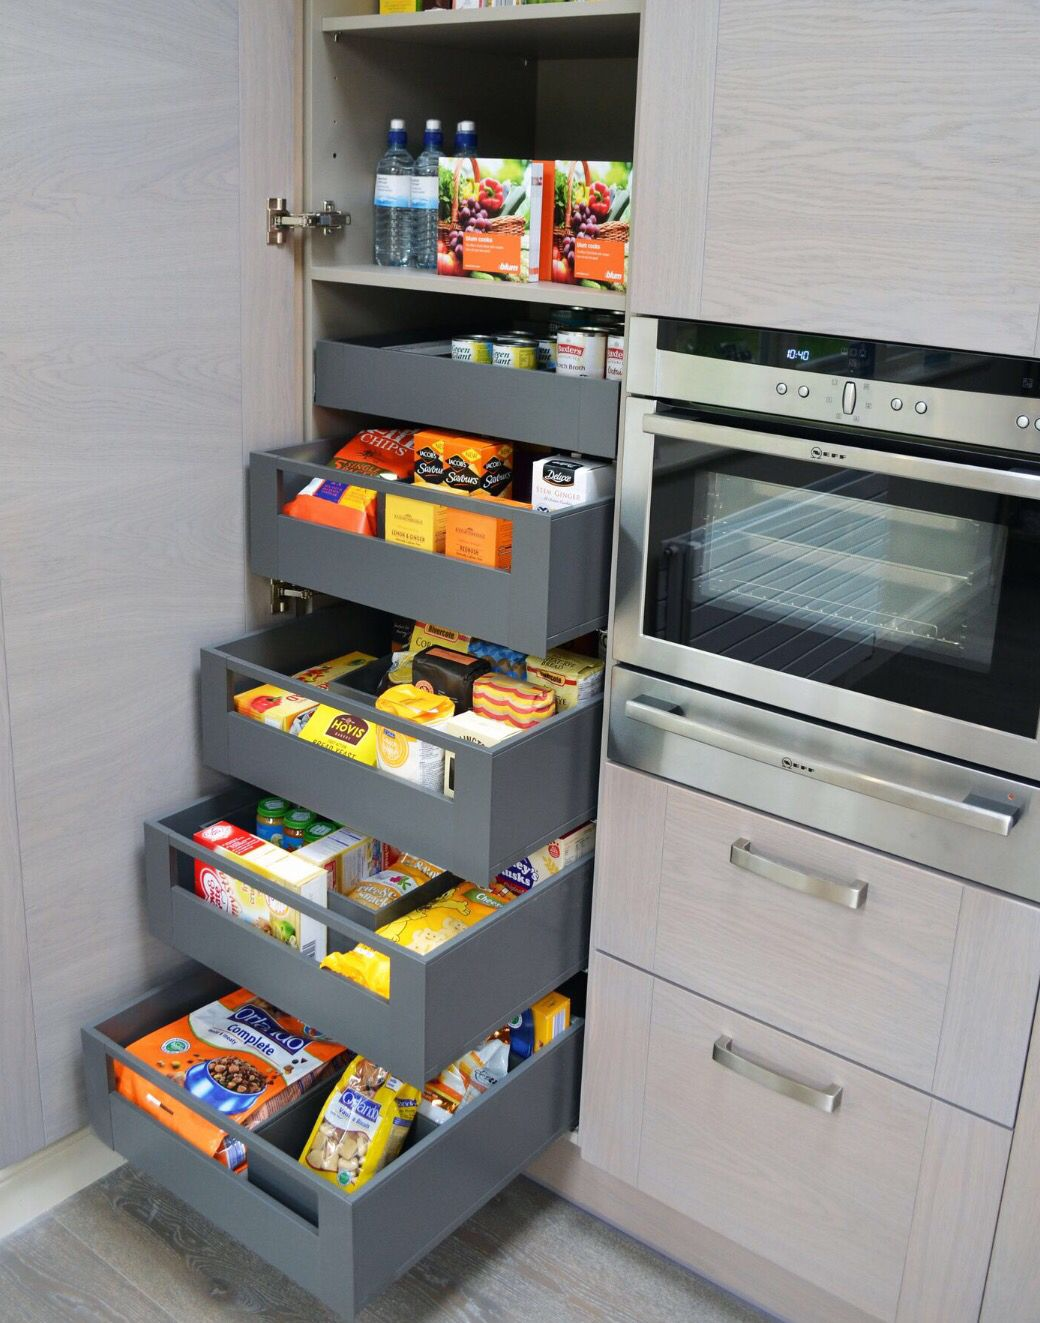 1000 images about cuisine organis e on pinterest kitchen cabinet organization cuisine and pantry - Kitchen storage space ...